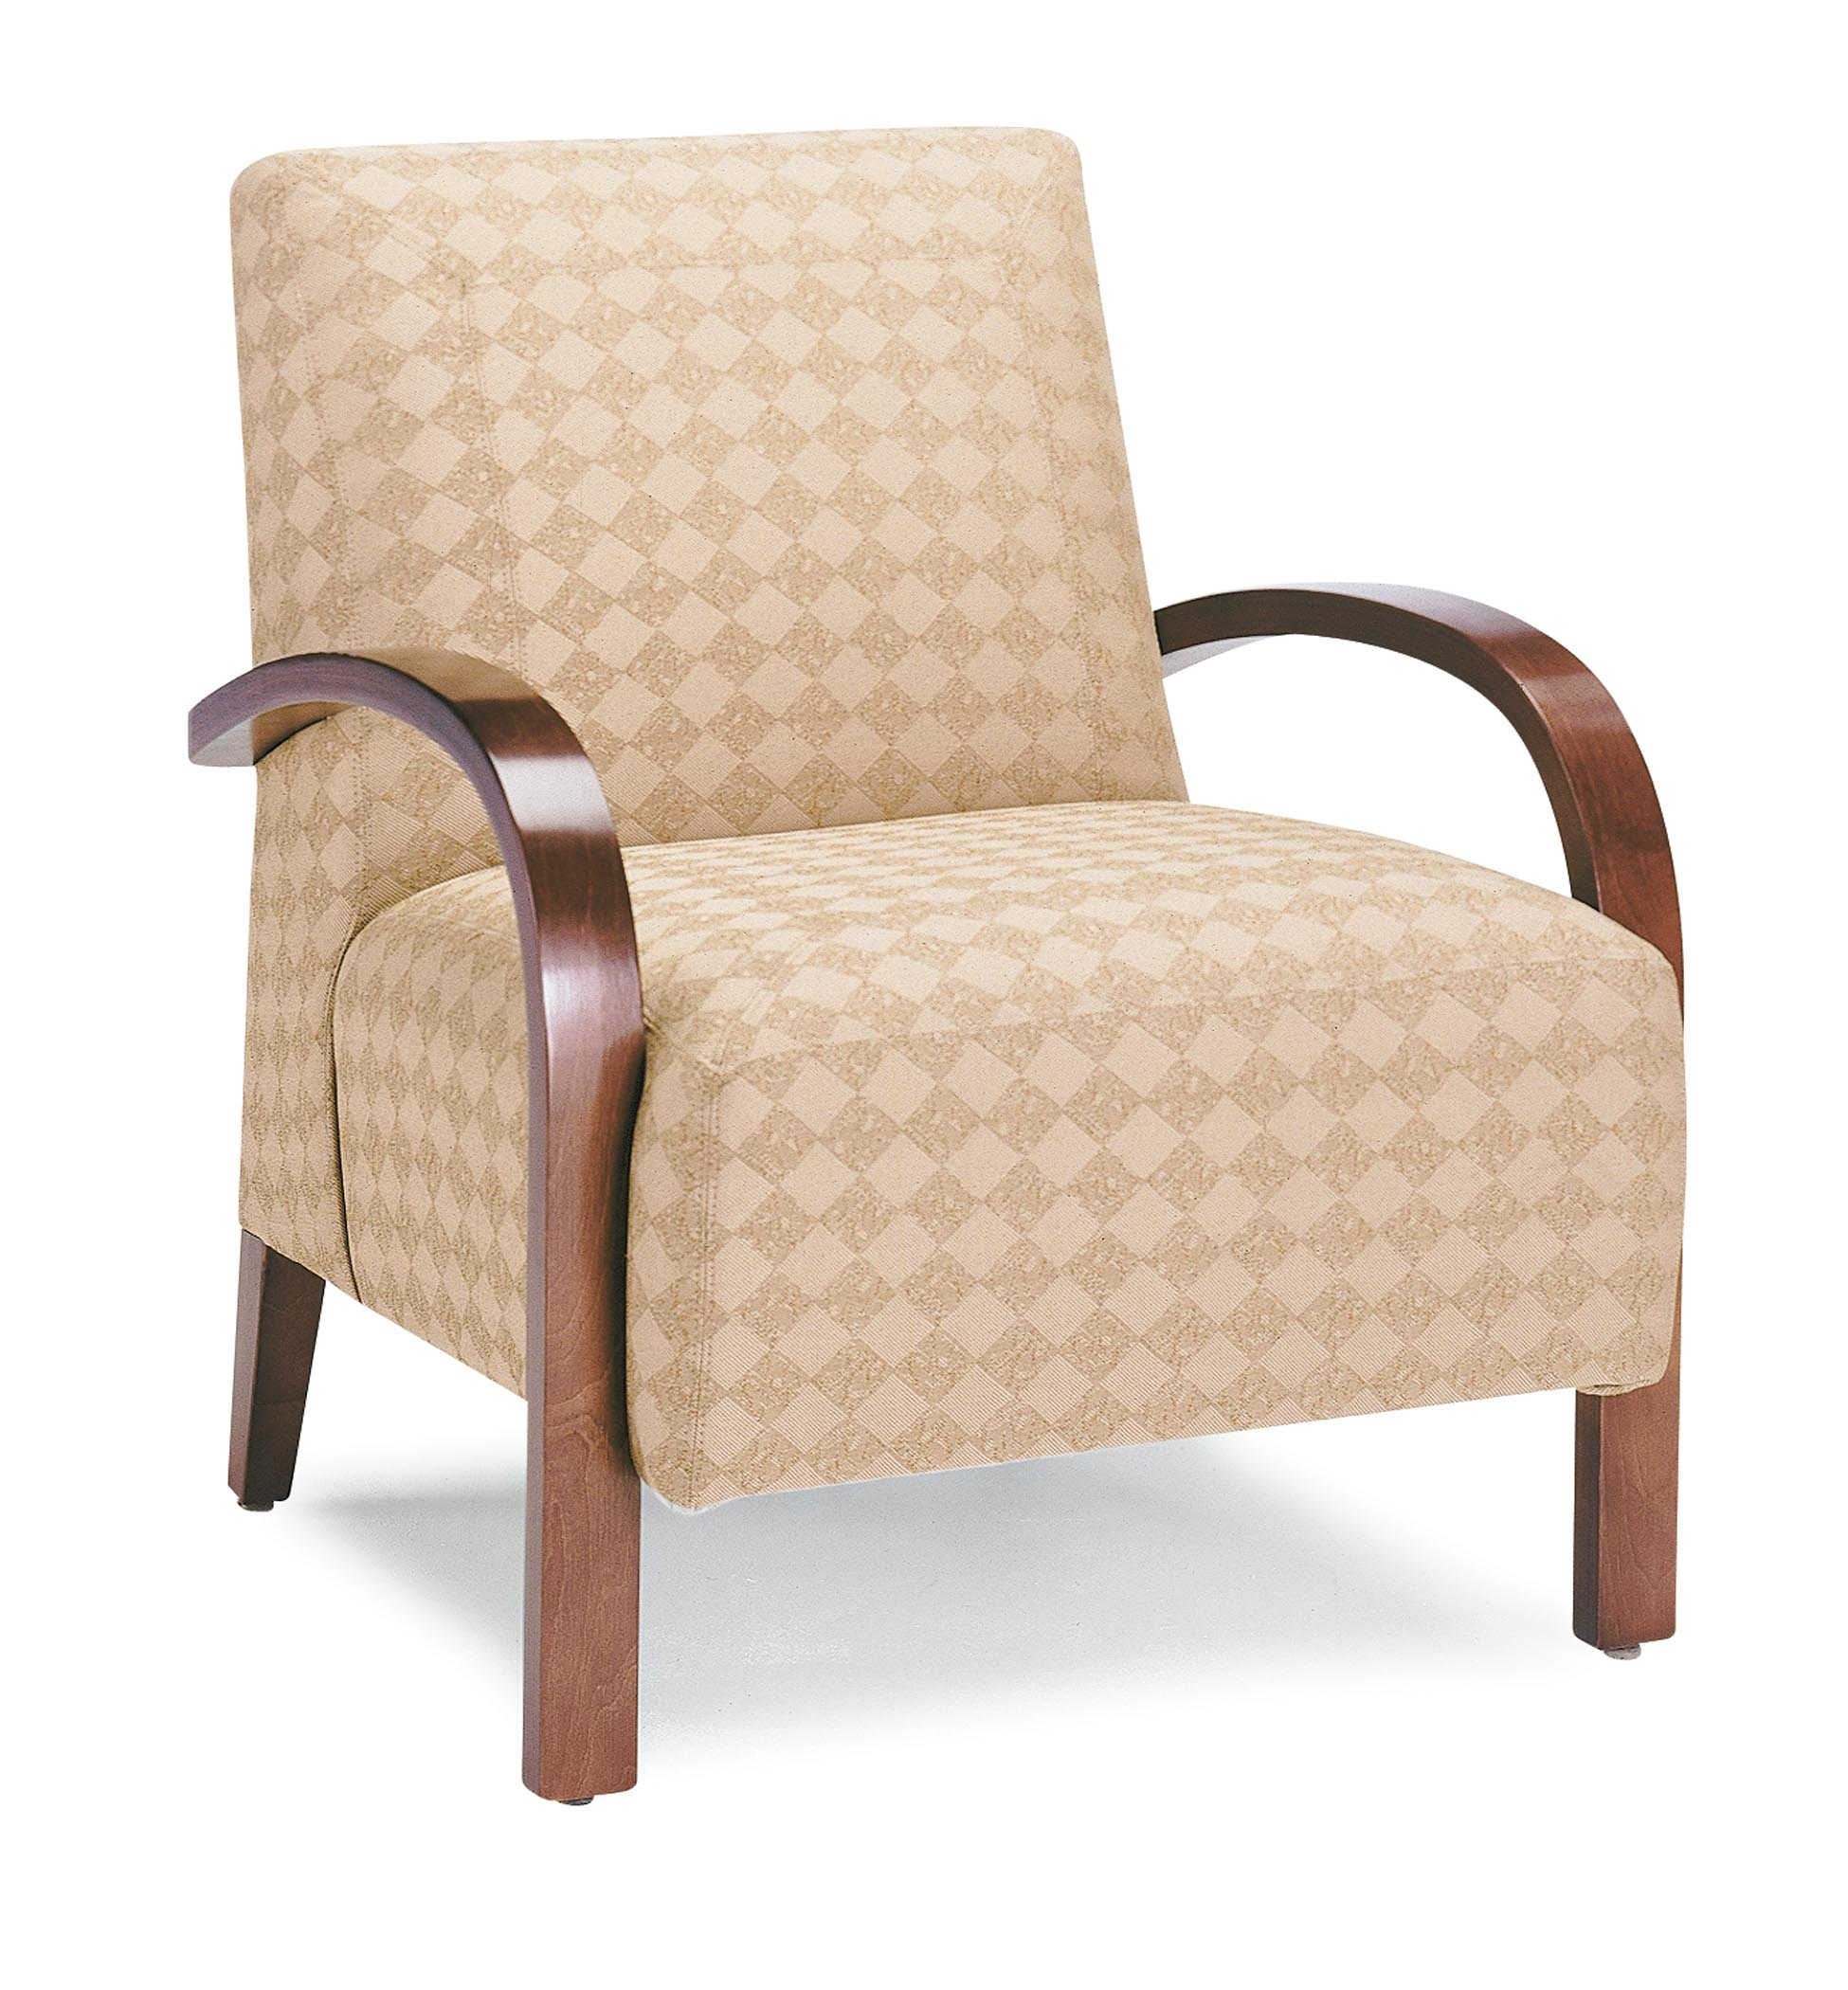 wooden chairs with arms india wheelchair on tracks 7240 wood arm chair